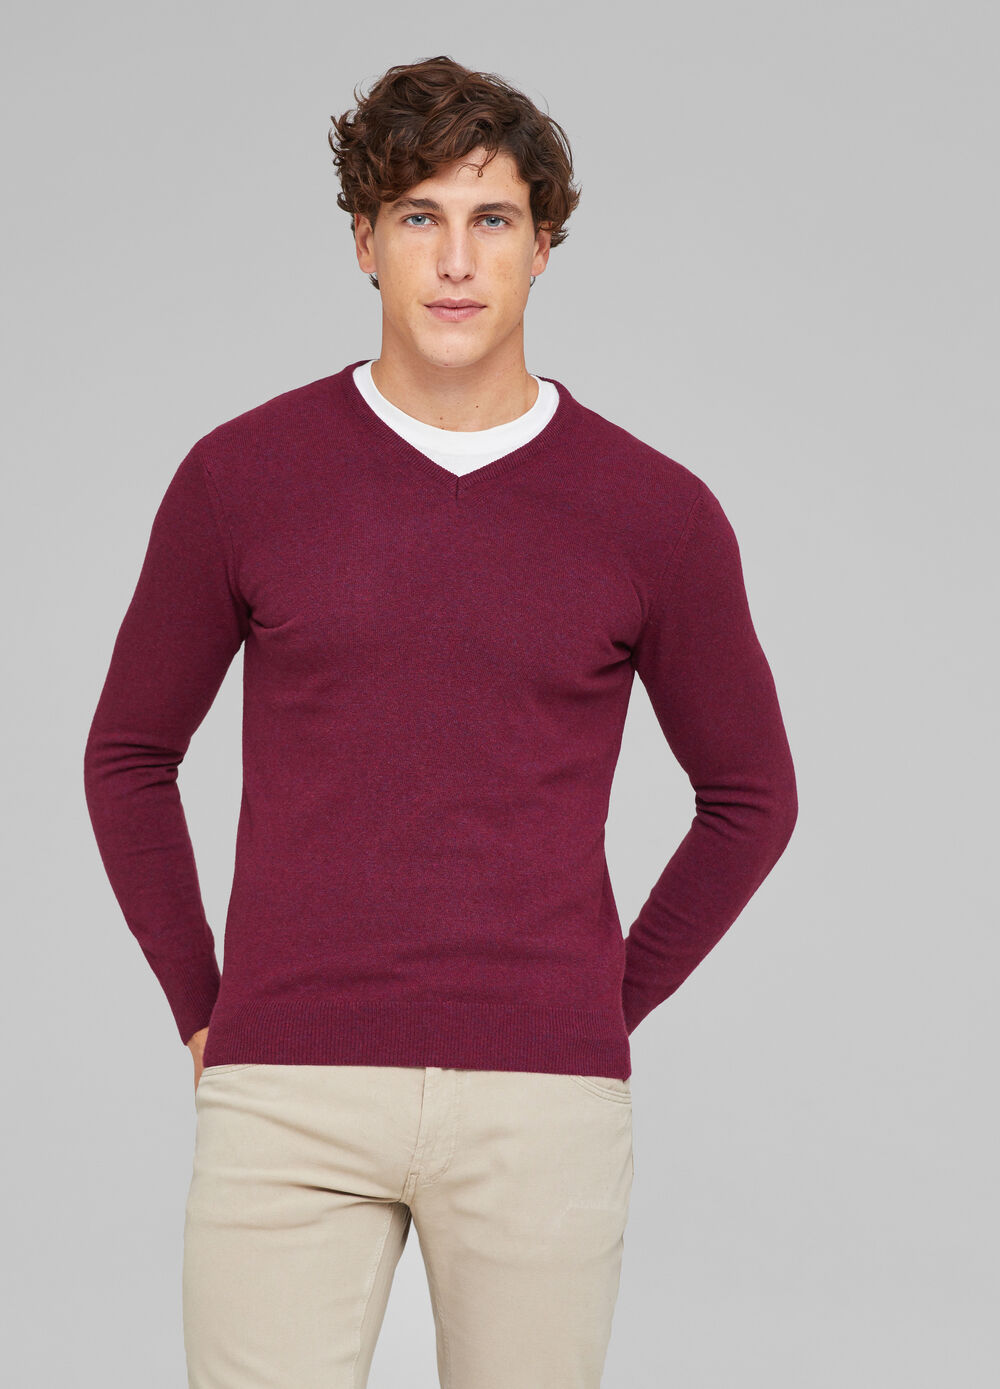 Cashmere blend knitted pullover